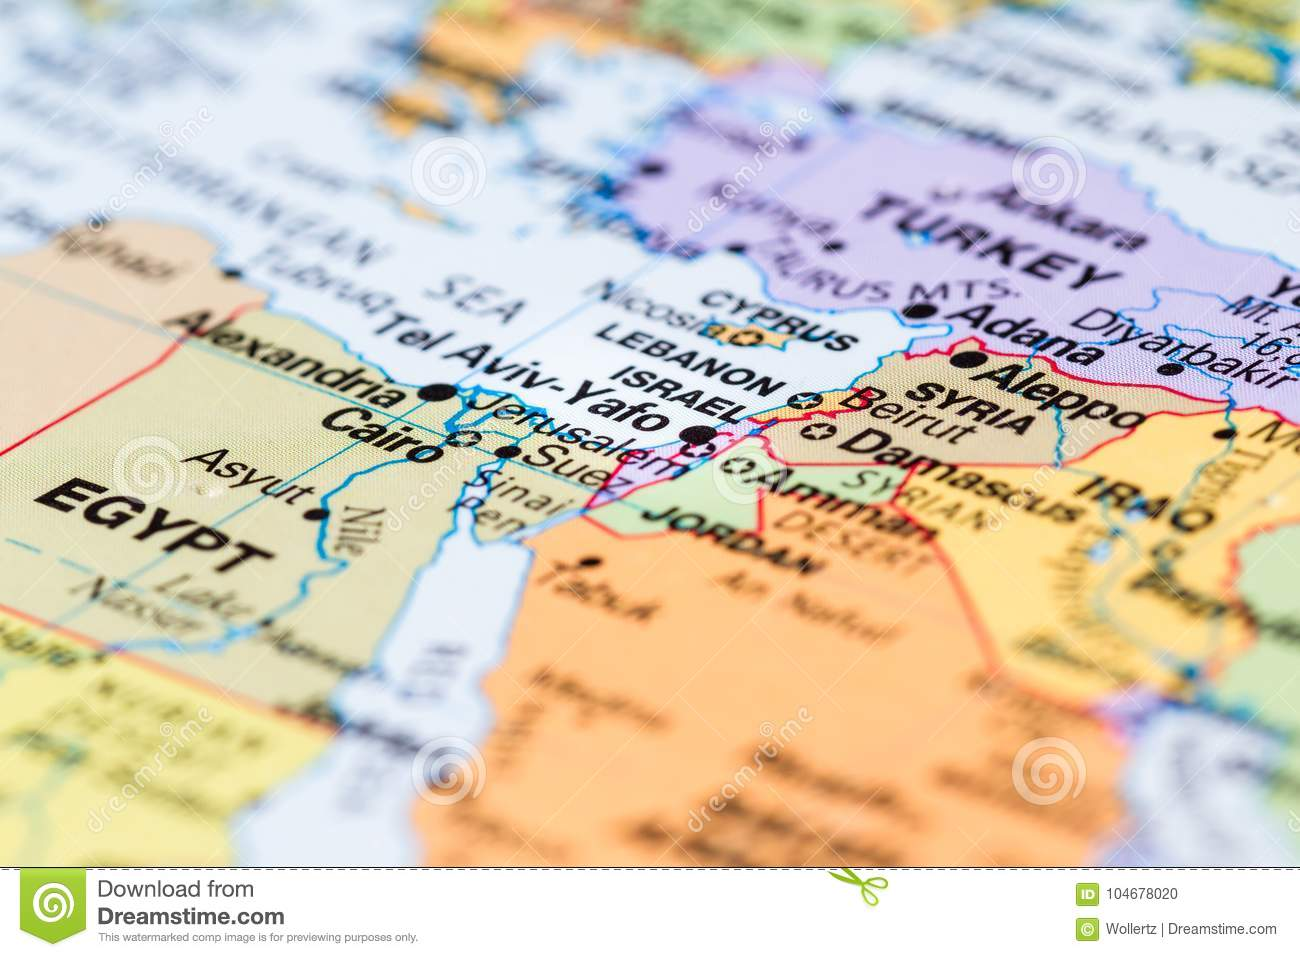 Israel On A Map Of The World.Israel On A Map Stock Photo Image Of Explore Color 104678020